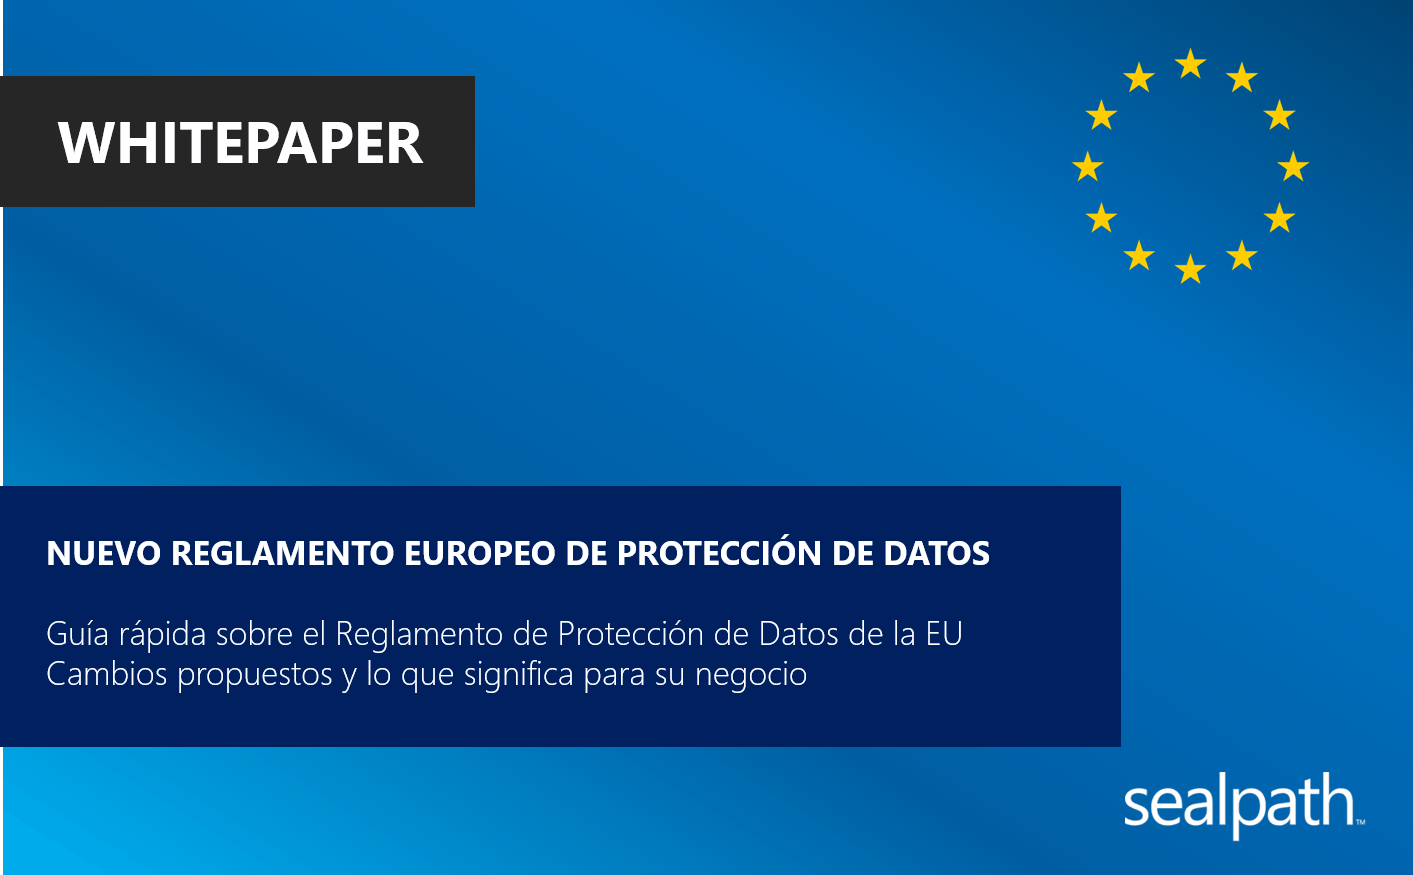 EU DATA PROTECTION LAW